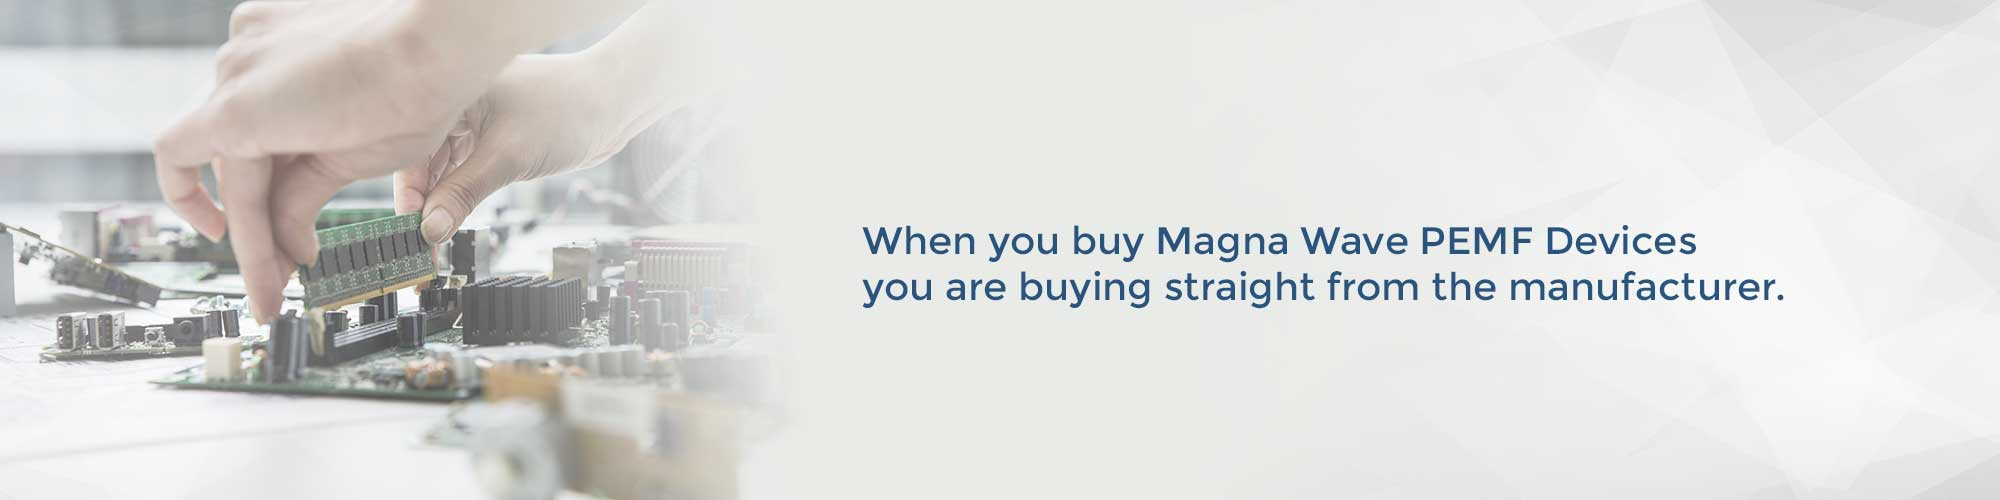 When you buy Magna Wave PEMF Devices you are buying straight from the manufacturere.